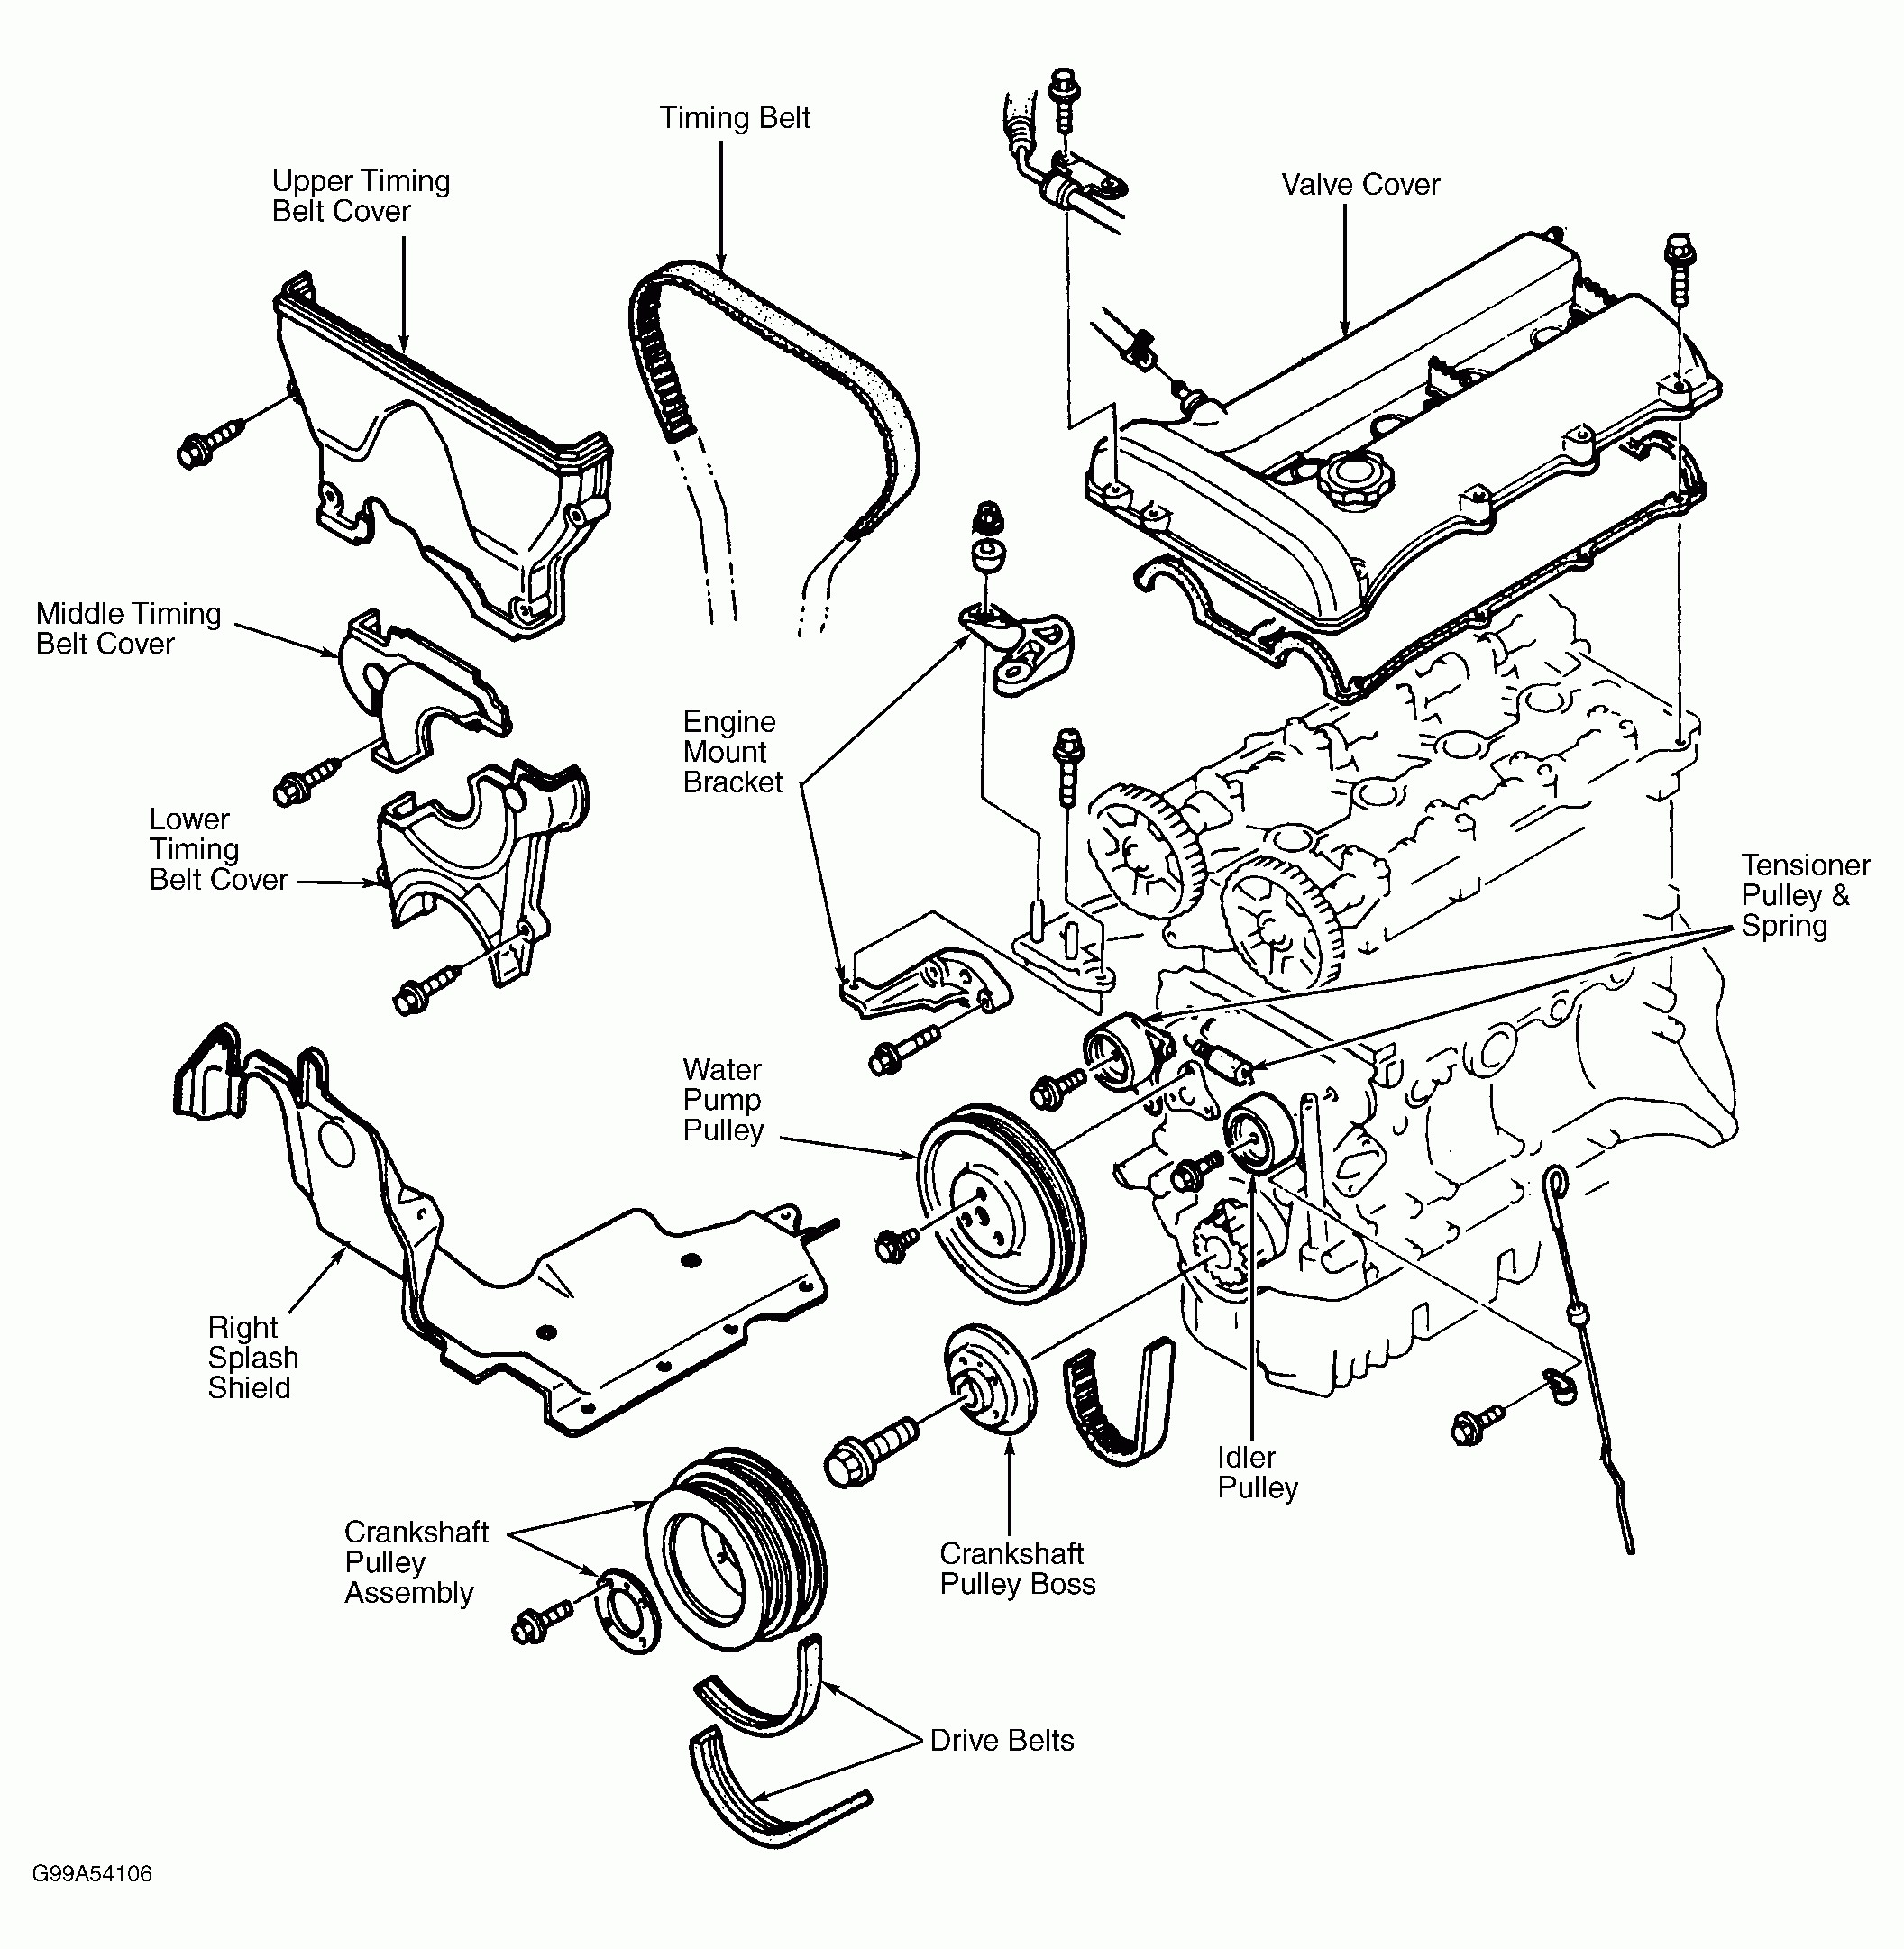 1997 mazda protege parts diagram  u2022 wiring diagram for free